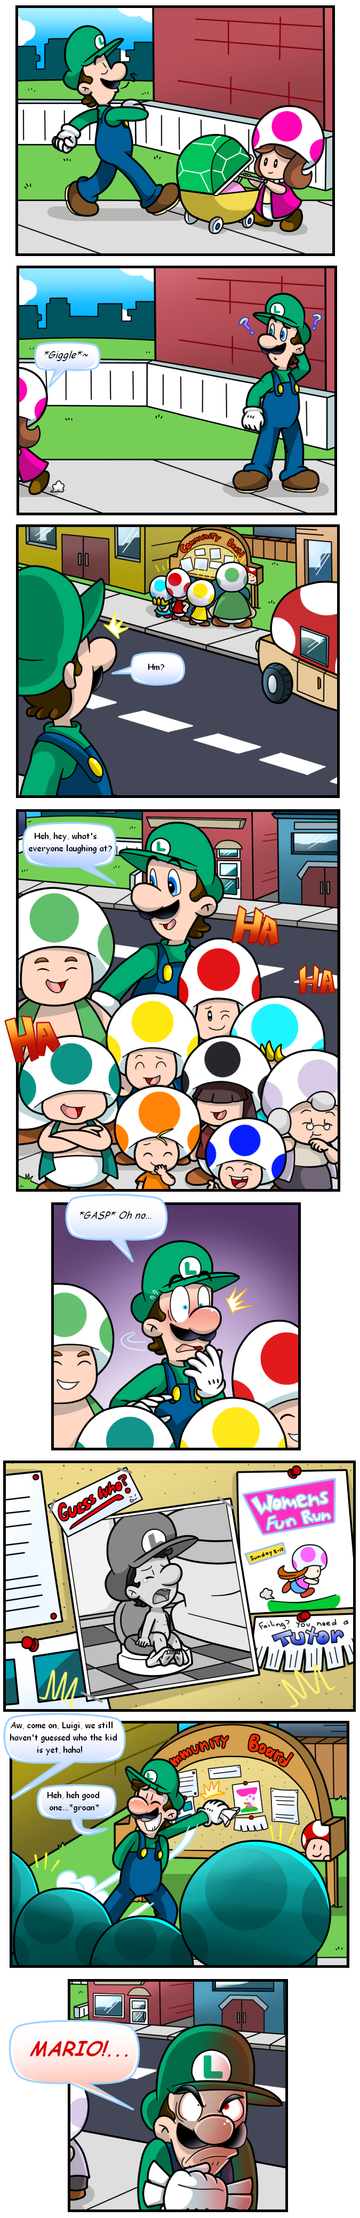 Pranksters 2: Page 4 by Nintendrawer